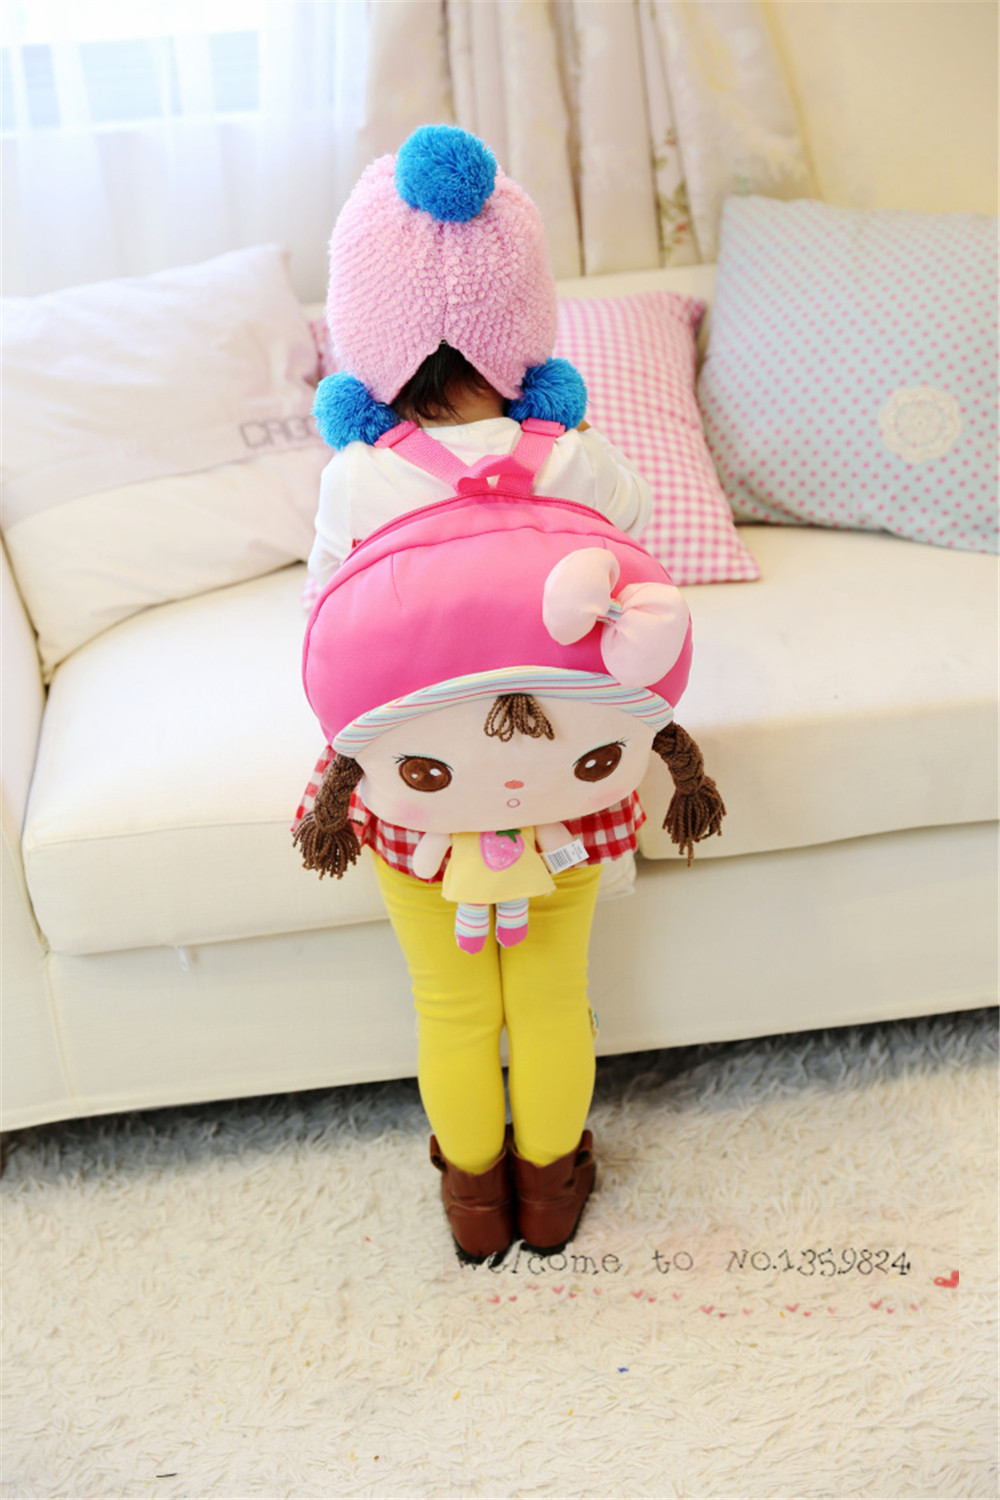 Cute Little Girl Backpacks sXf33hzh